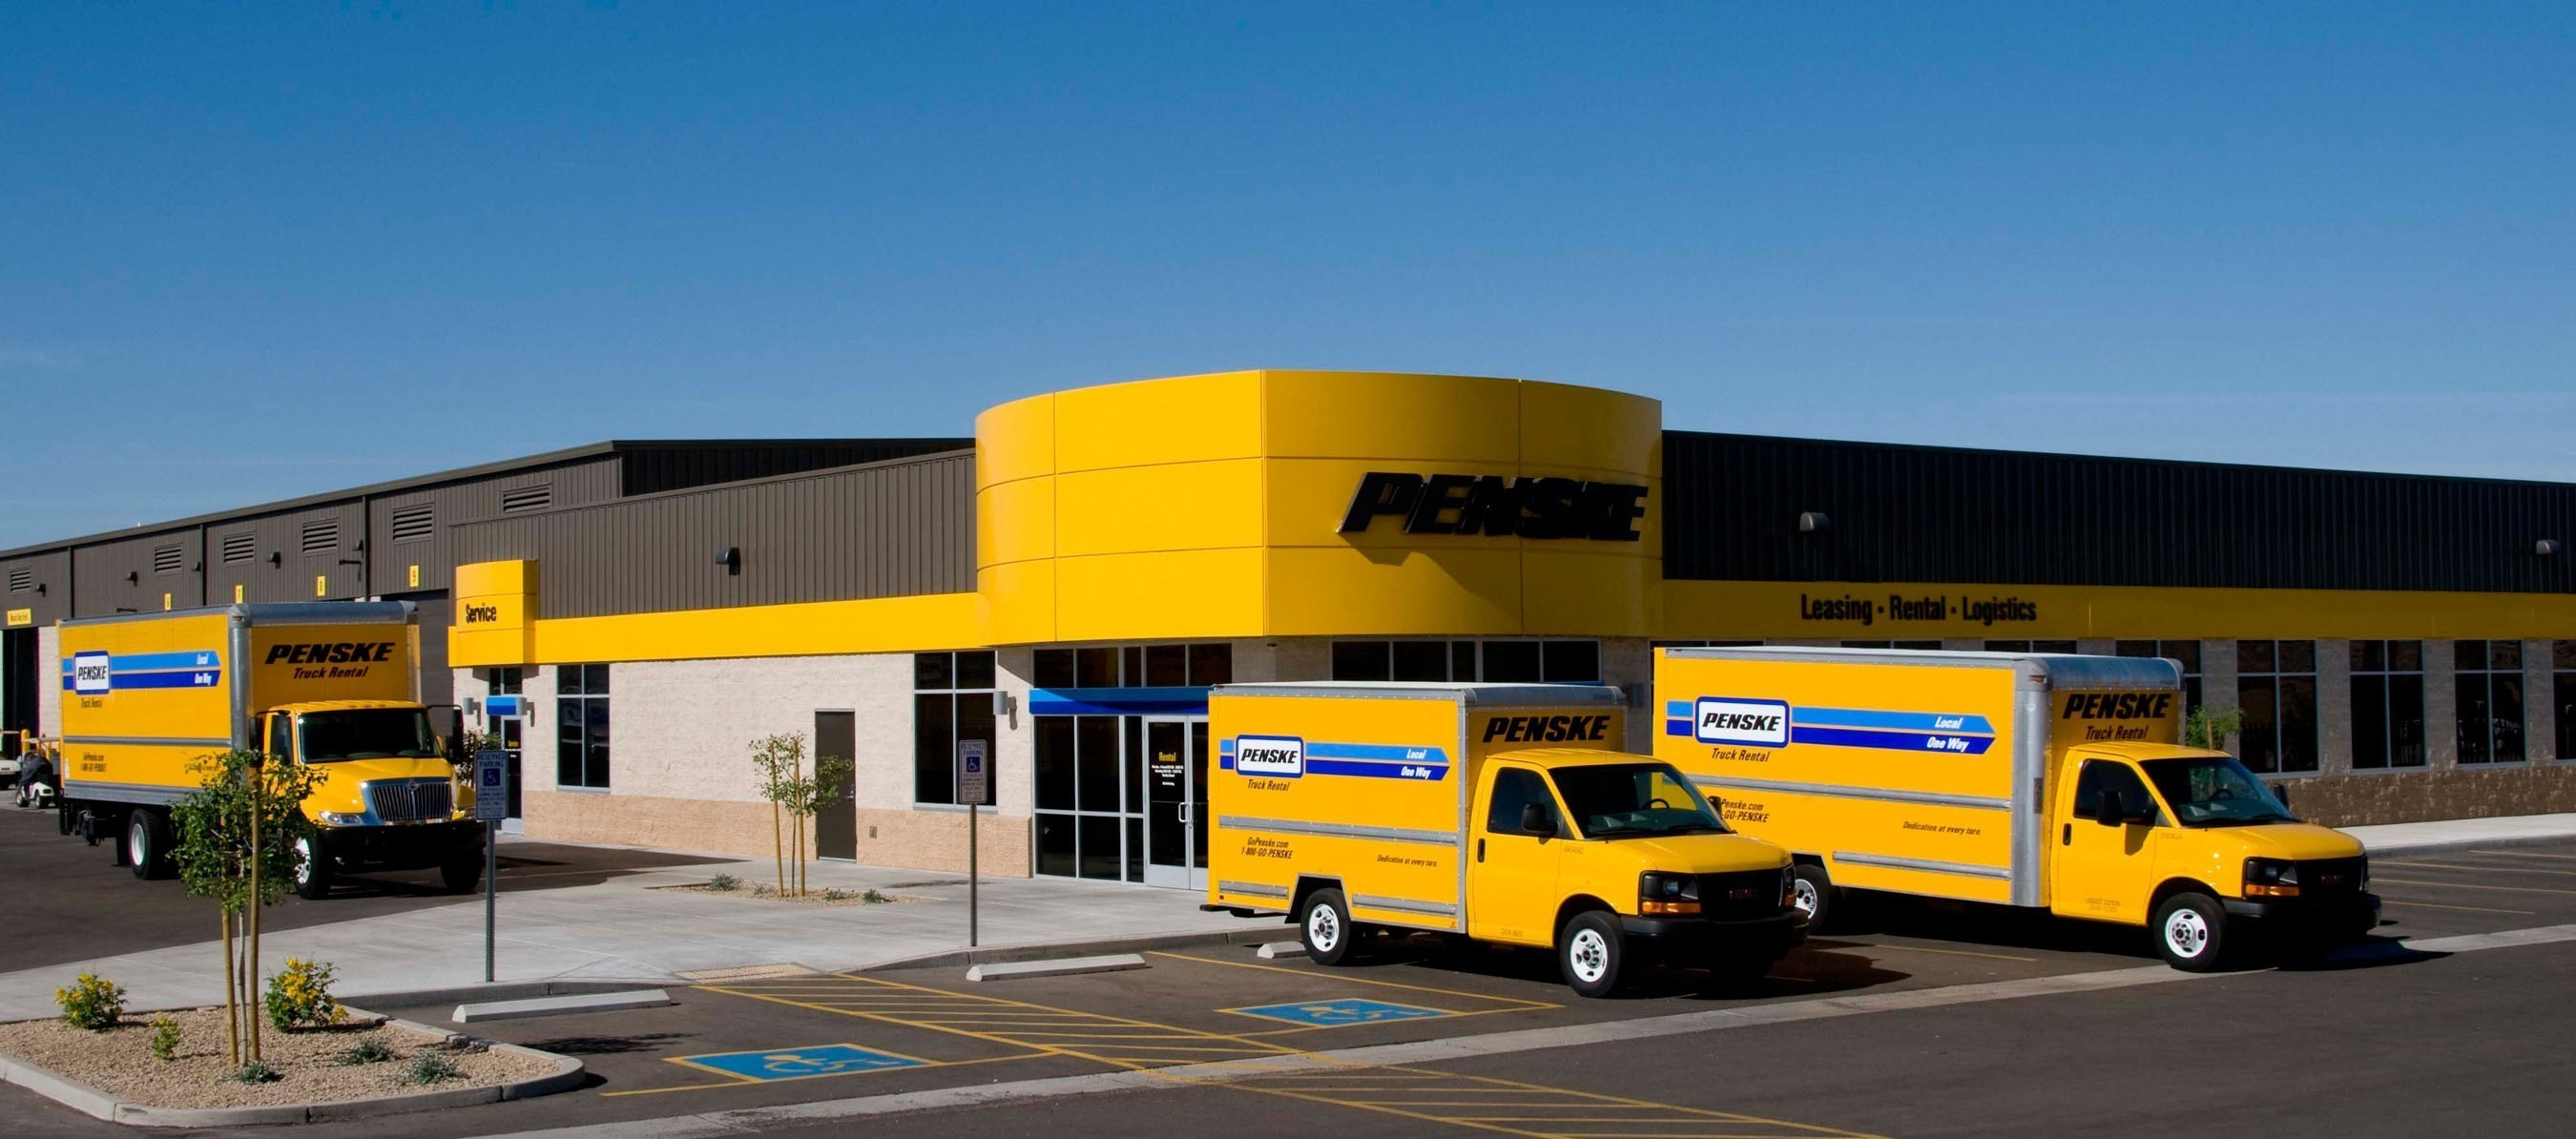 Penske provides innovative logistics services and solutions using a results-oriented approach and extensive industry experience to meet your logistics needs.